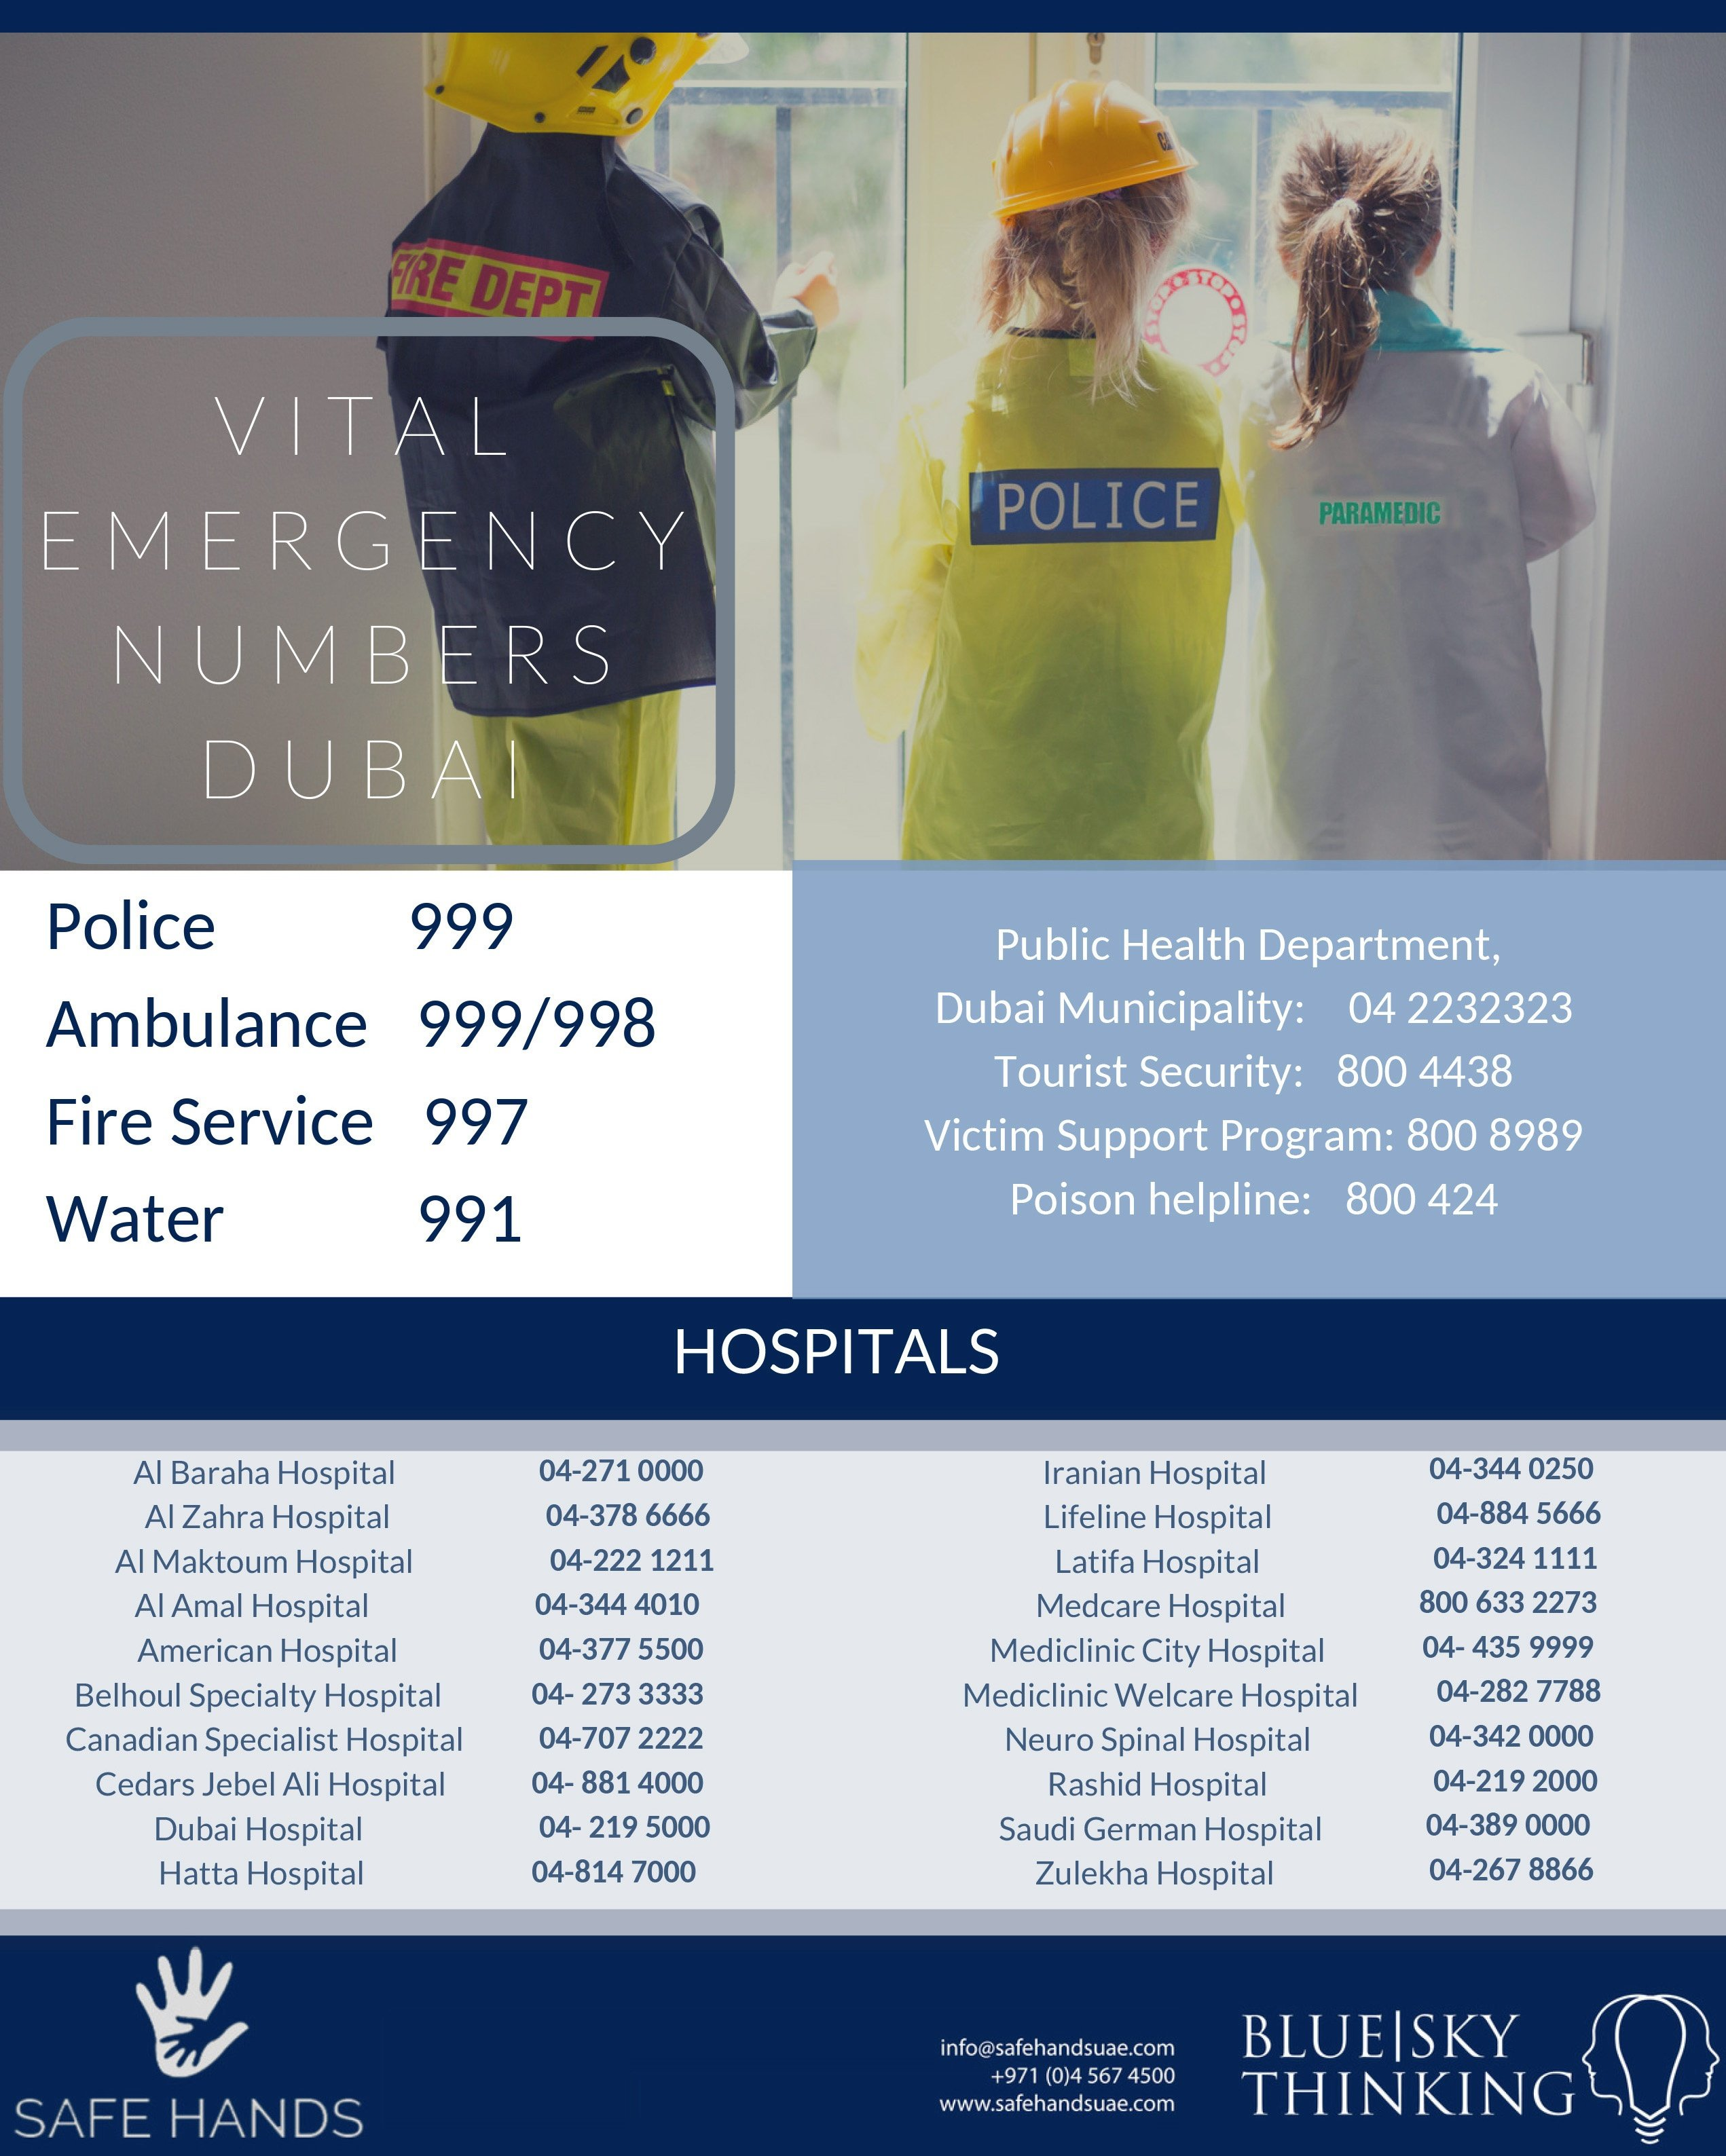 Your one-stop checklist for emergency contact numbers in Dubai